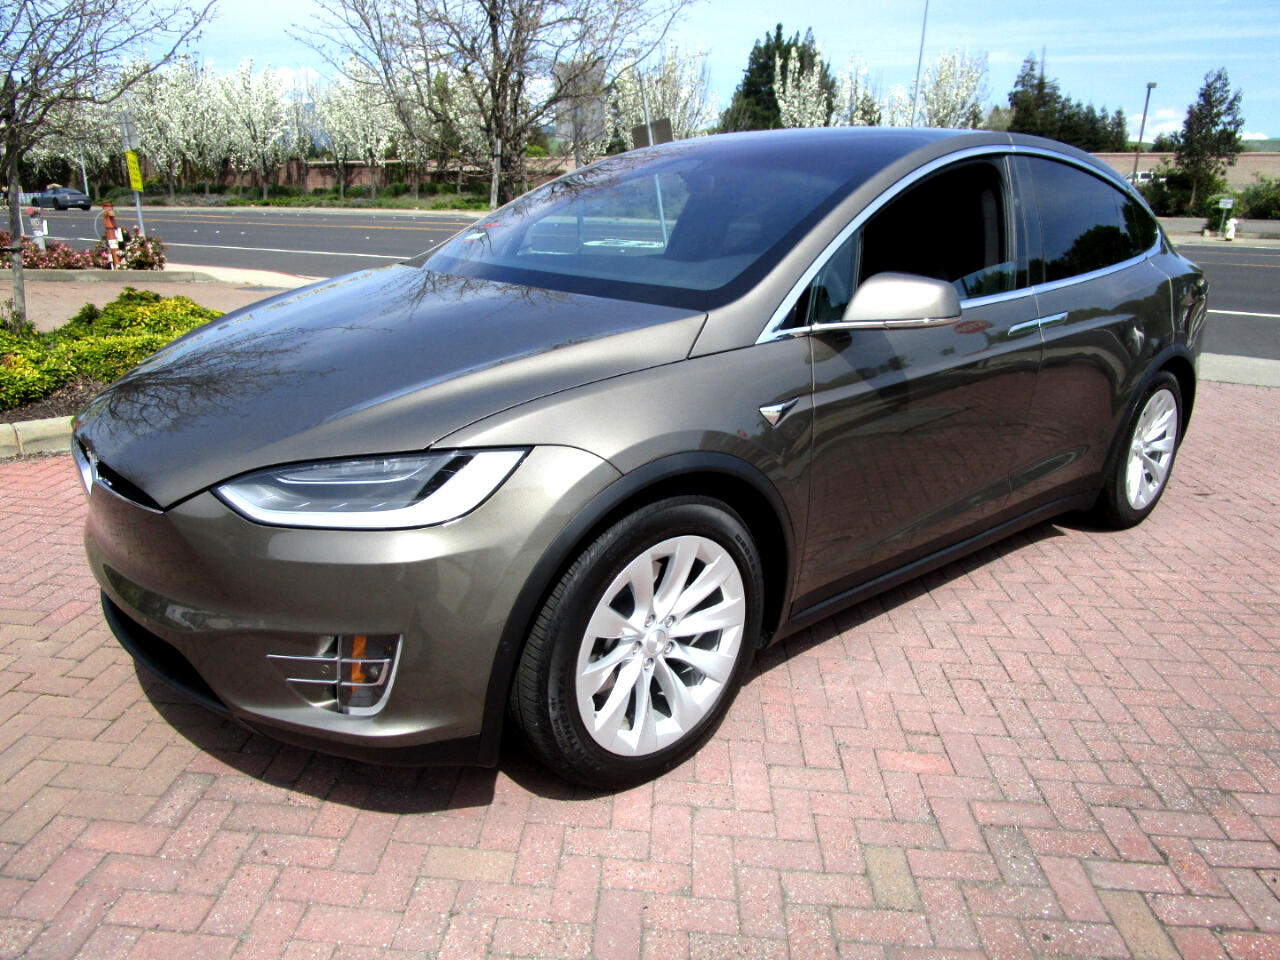 2016 Tesla Model X 90D AWD**FULL AUTO PILOT WITH SELF DRIVING CAPABIL